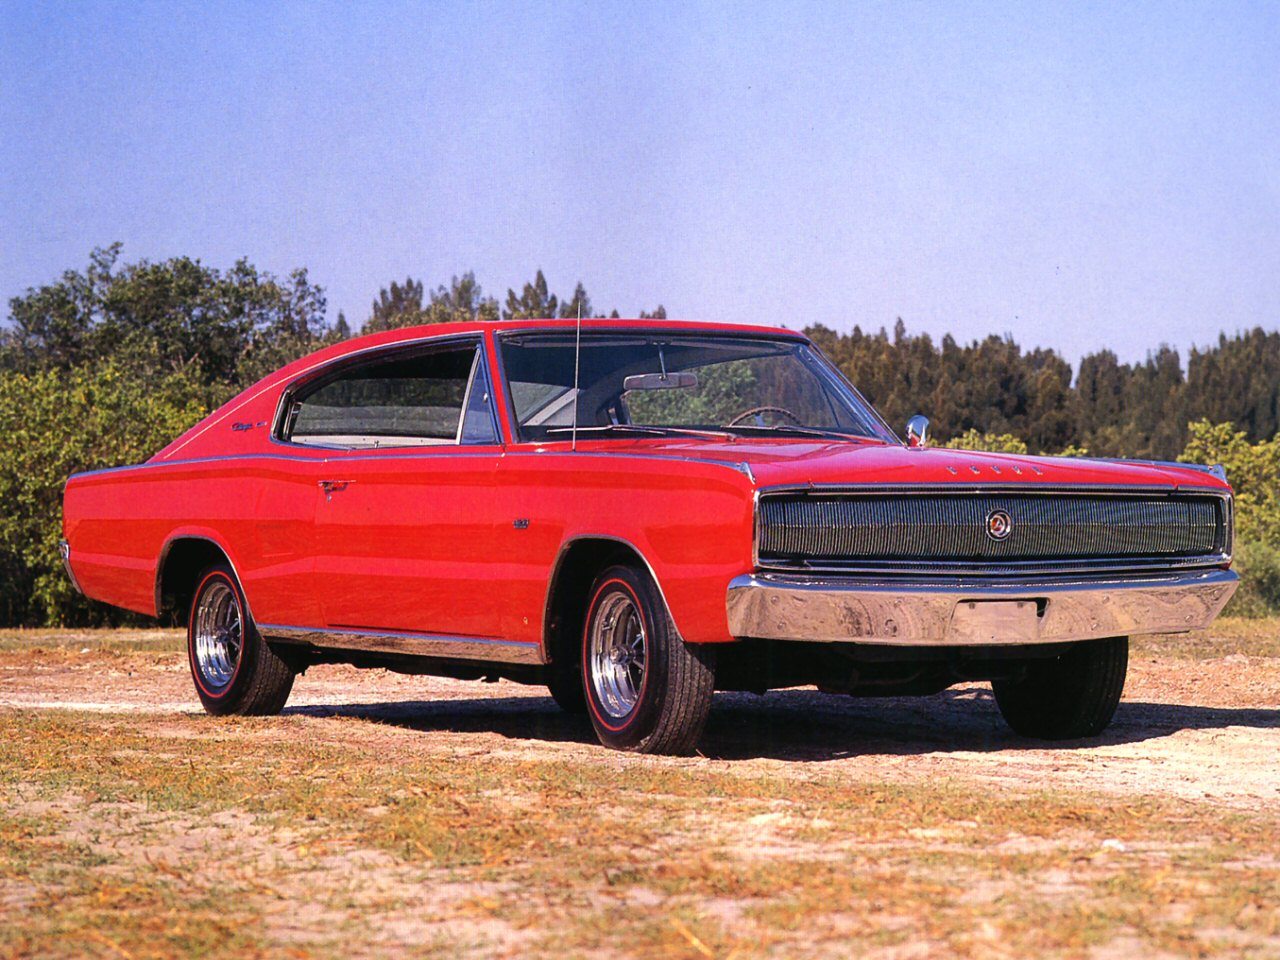 DODGE CHARGER RED CARGURUS CAR 20